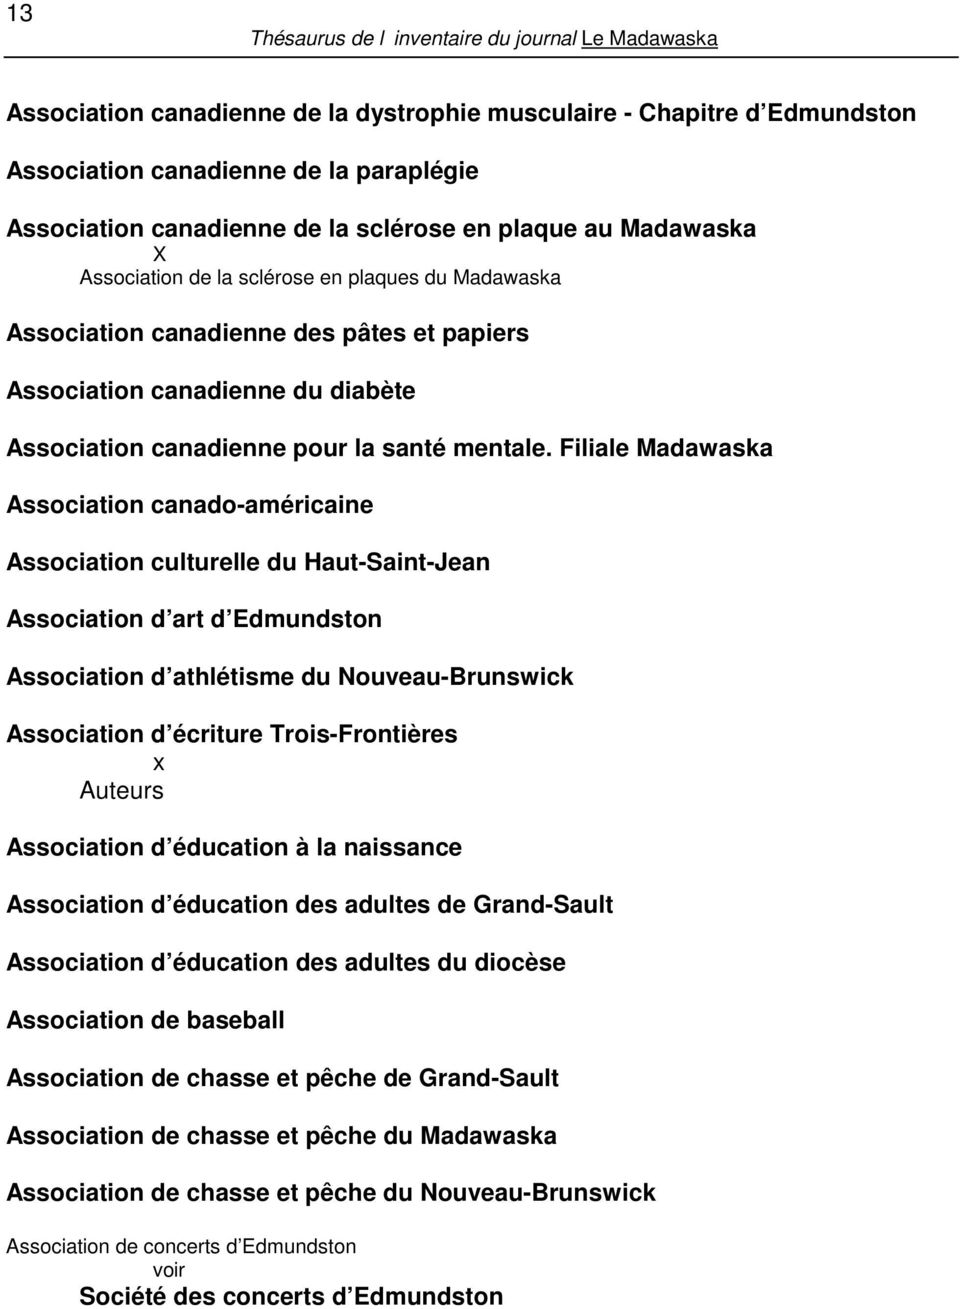 Filiale Madawaska Association canado-américaine Association culturelle du Haut-Saint-Jean Association d art d Edmundston Association d athlétisme du Nouveau-Brunswick Association d écriture